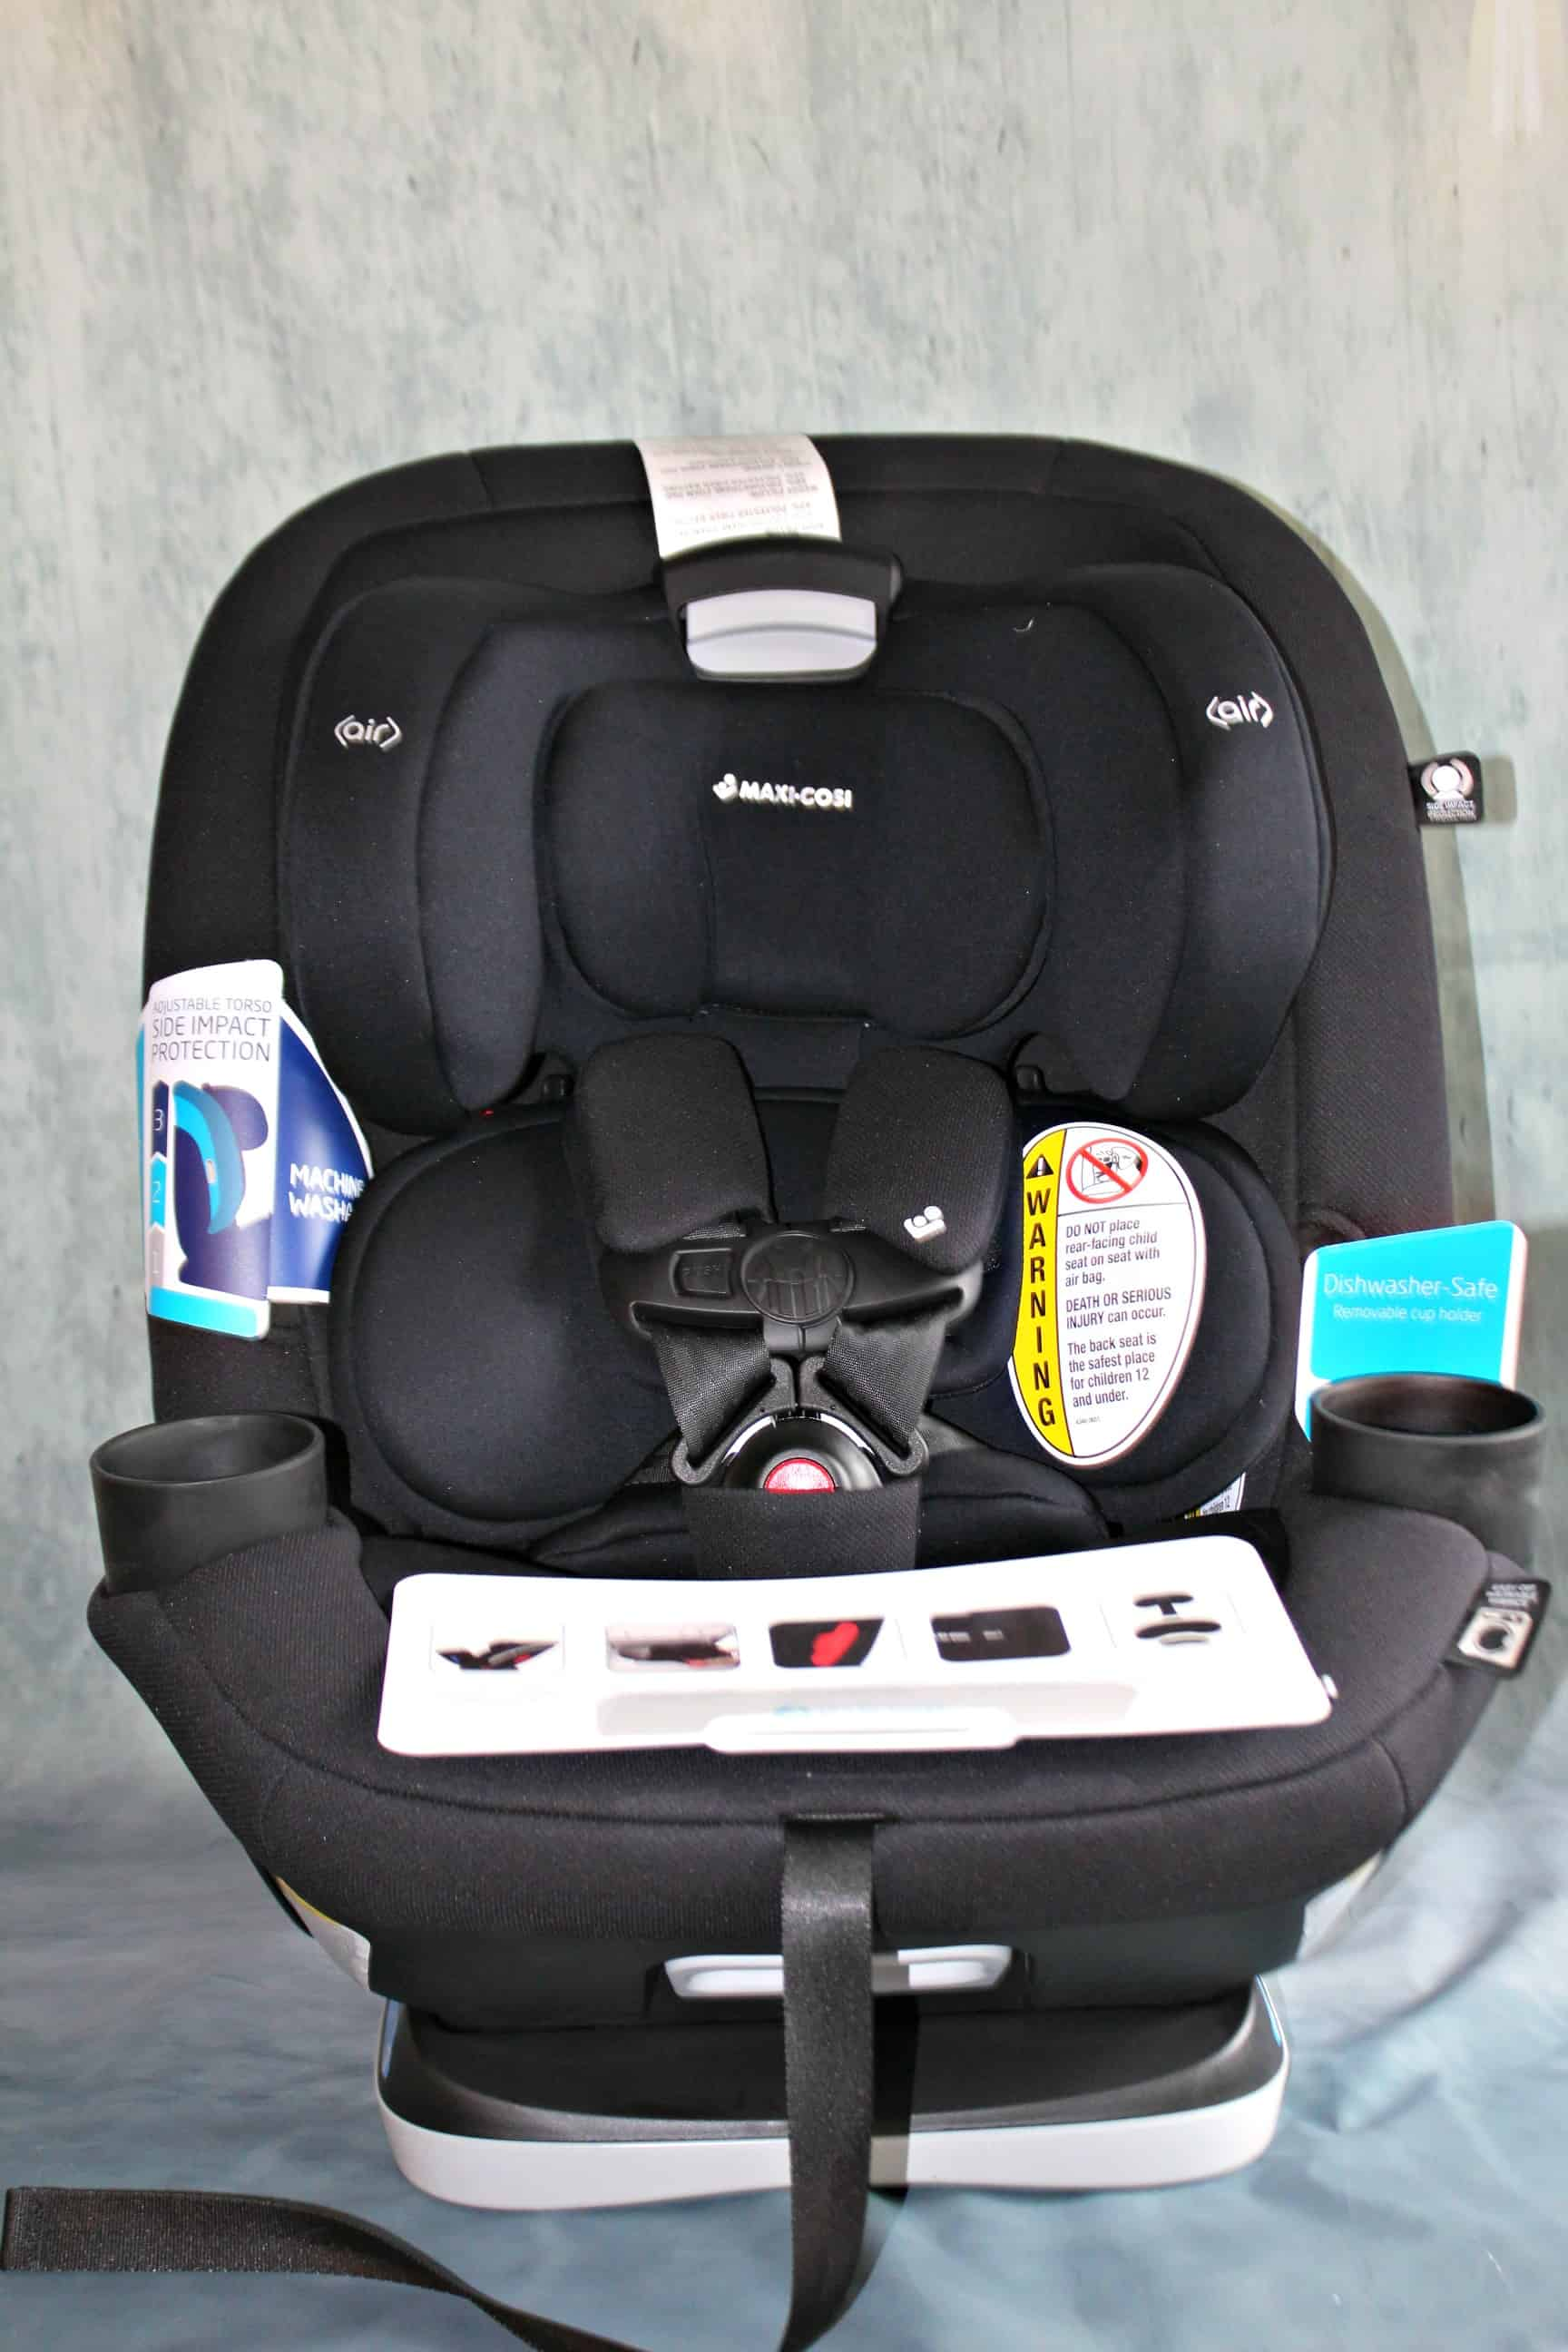 Need a Car Seat? Look no further than the Maxi-Cosi Magellan